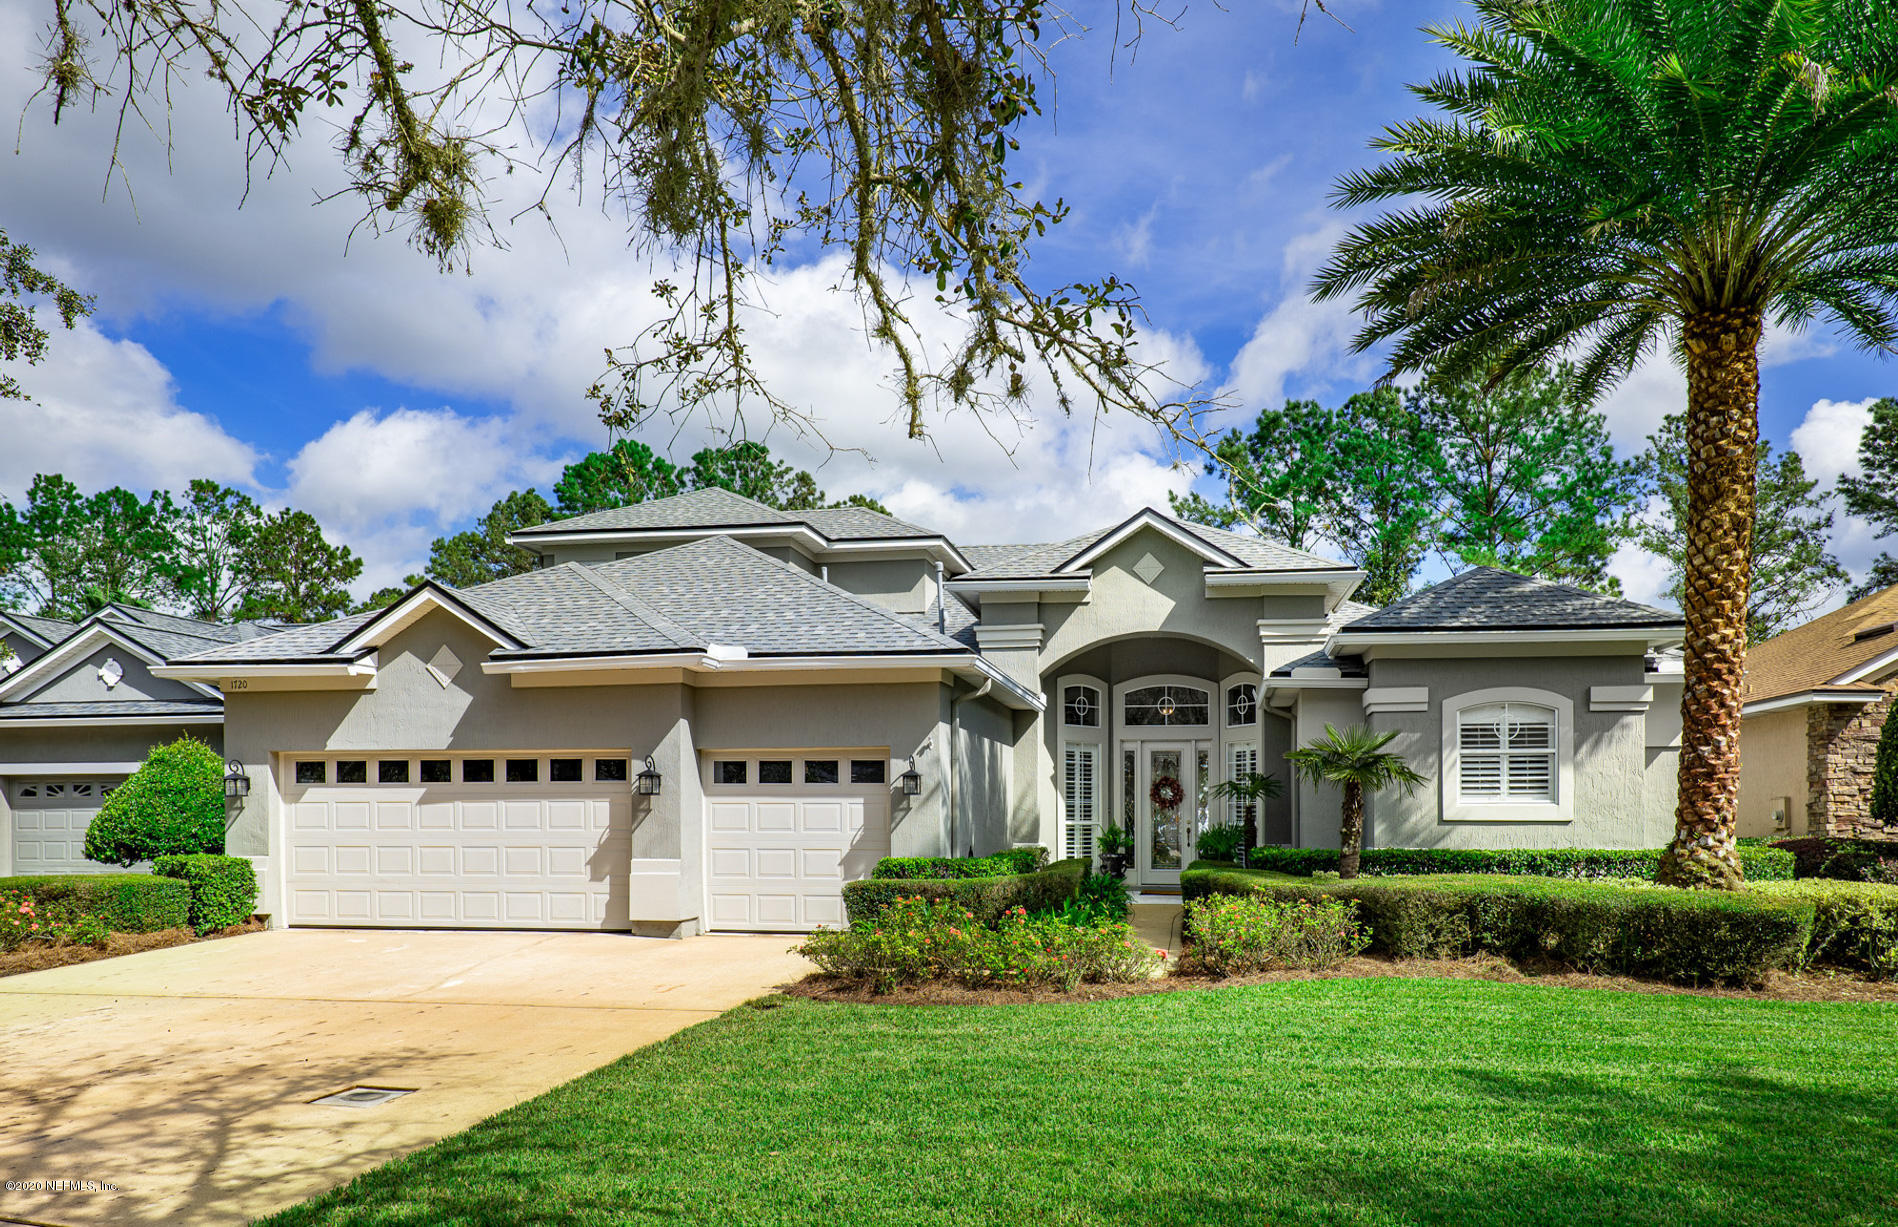 1720 COBBLESTONE, ST AUGUSTINE, FLORIDA 32092, 4 Bedrooms Bedrooms, ,4 BathroomsBathrooms,Residential,For sale,COBBLESTONE,1082570